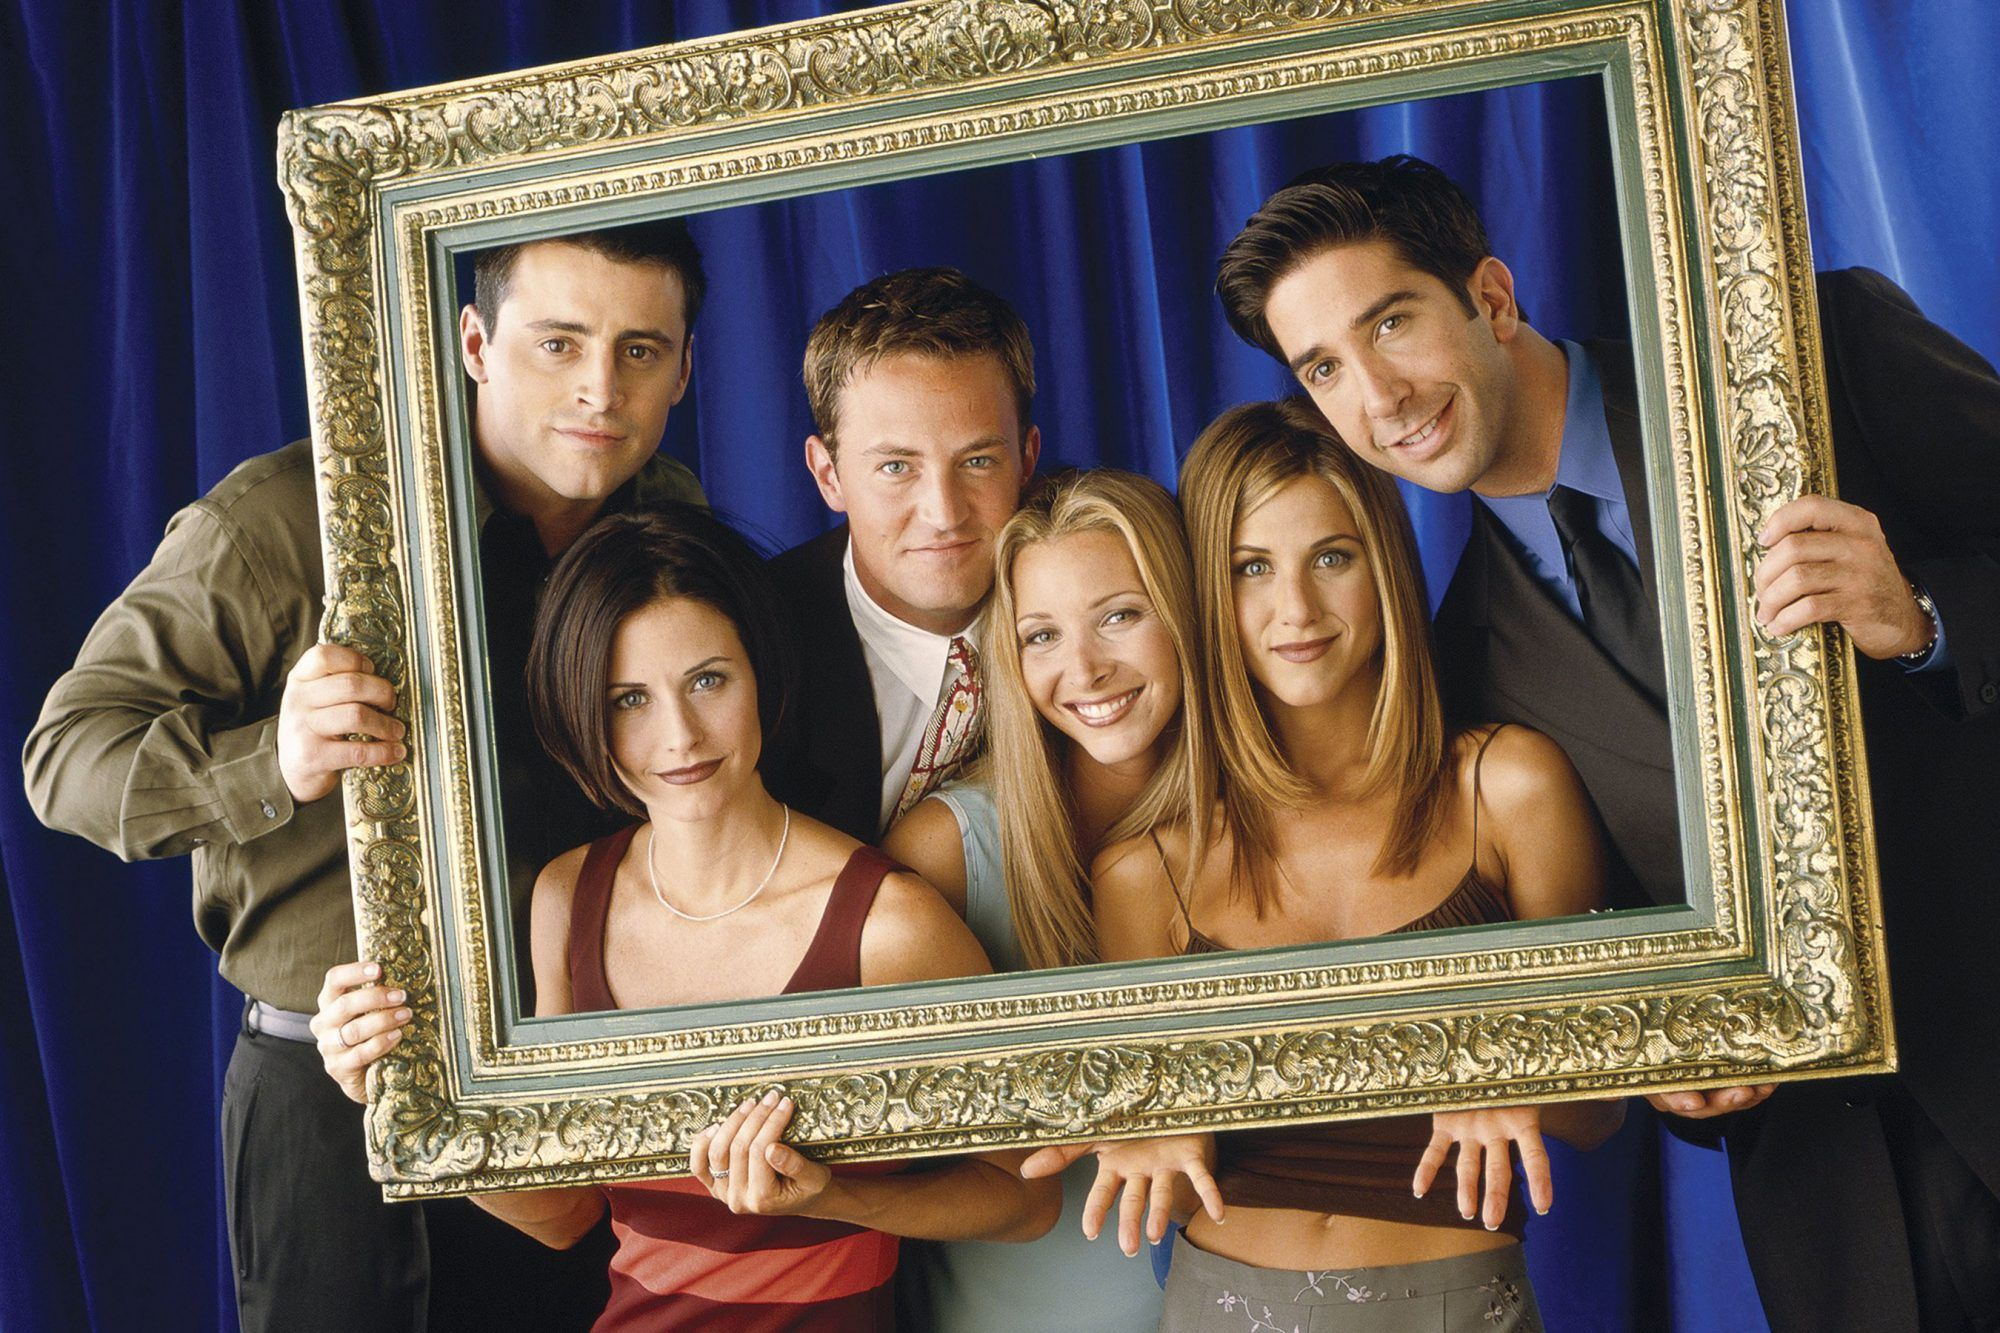 'Friends: The Reunion', we can finally see the trailer of the reunion of the protagonists of the famous sitcom